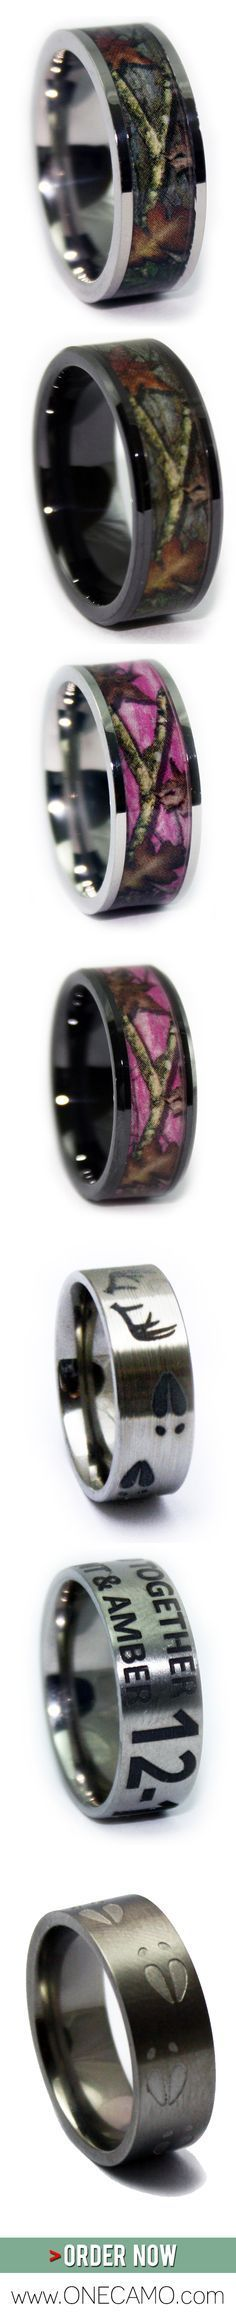 Looking for a gift for your hunter? Having a Camo Wedding? Do you LIVE in Mossy Oak and Realtree Camo apparel? Love the outdoors and hunting? ONECAMO created these Hunting Rings for you! Order now at www.1CAMO.com